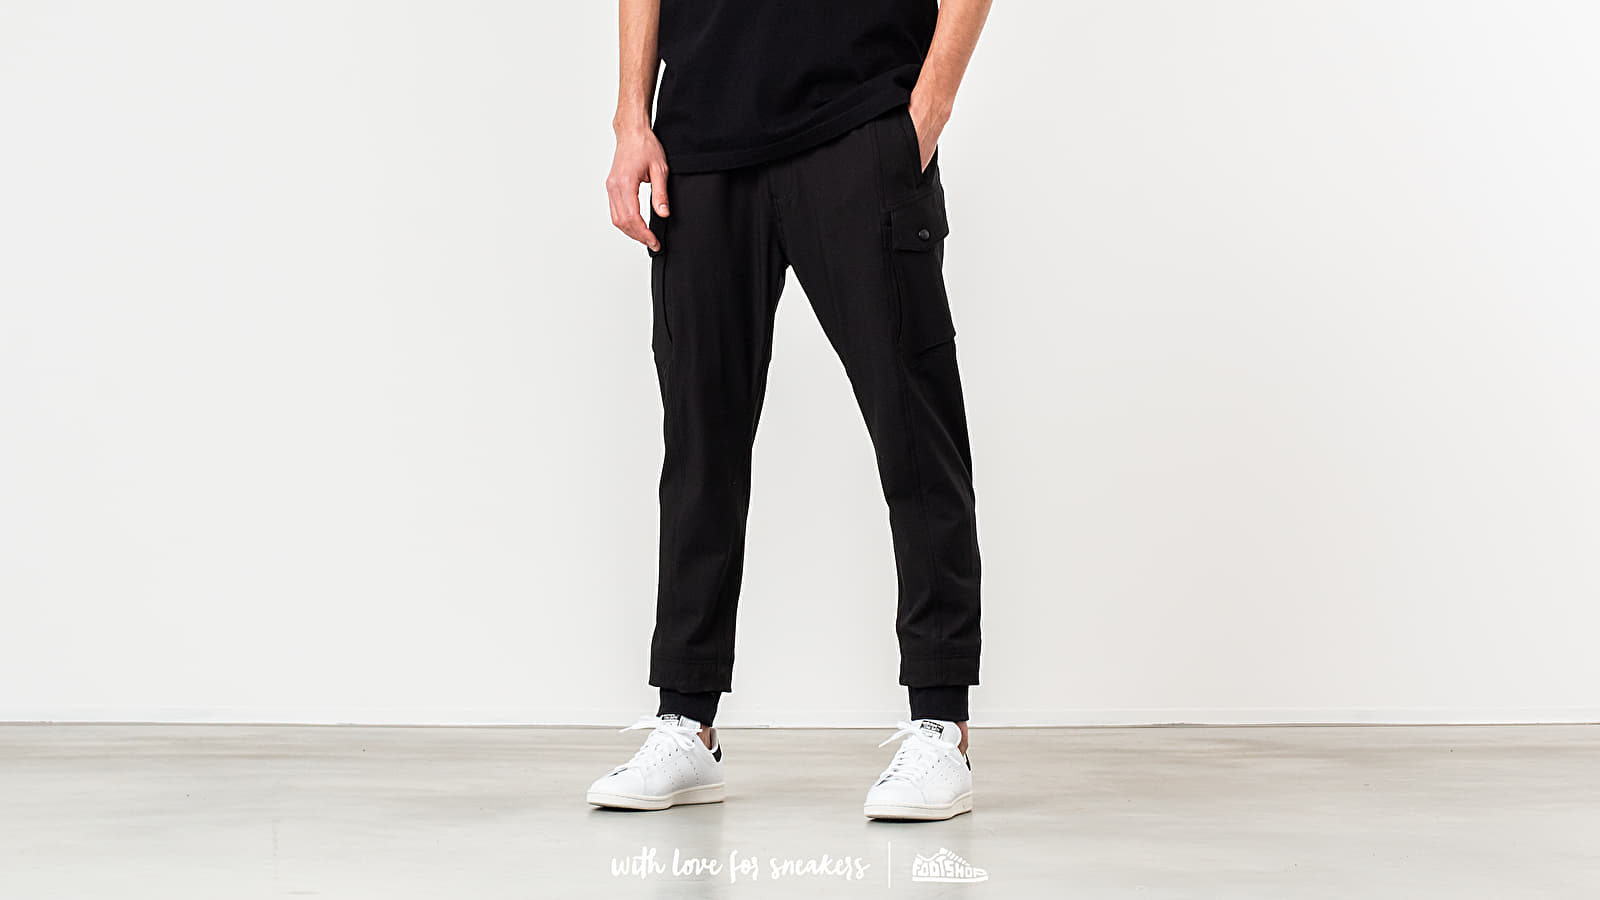 White Mountaineering Military Pants